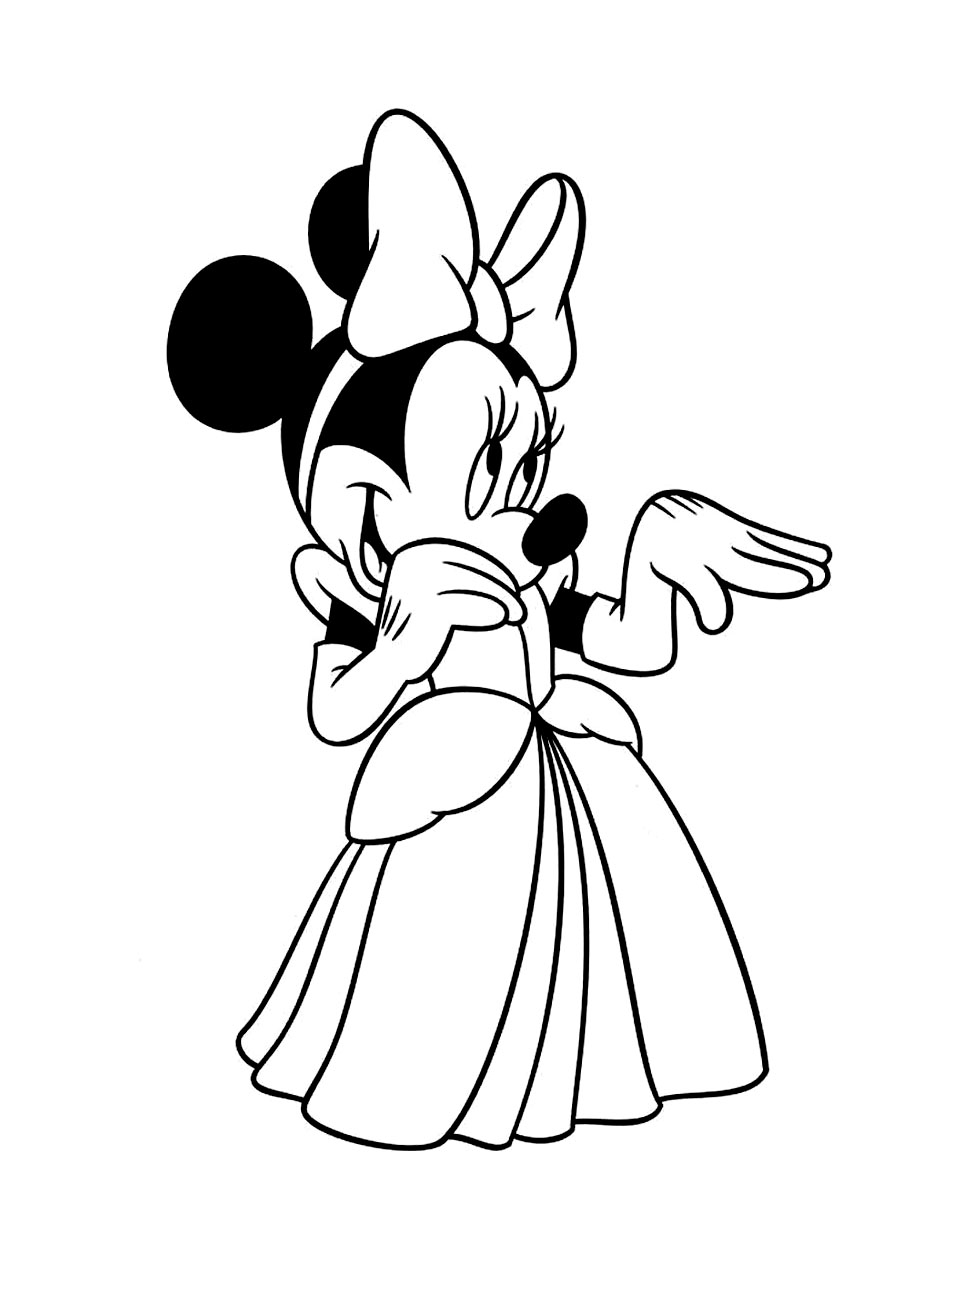 Minnie princesse coloriage minnie coloriages pour enfants - Colriage princesse ...